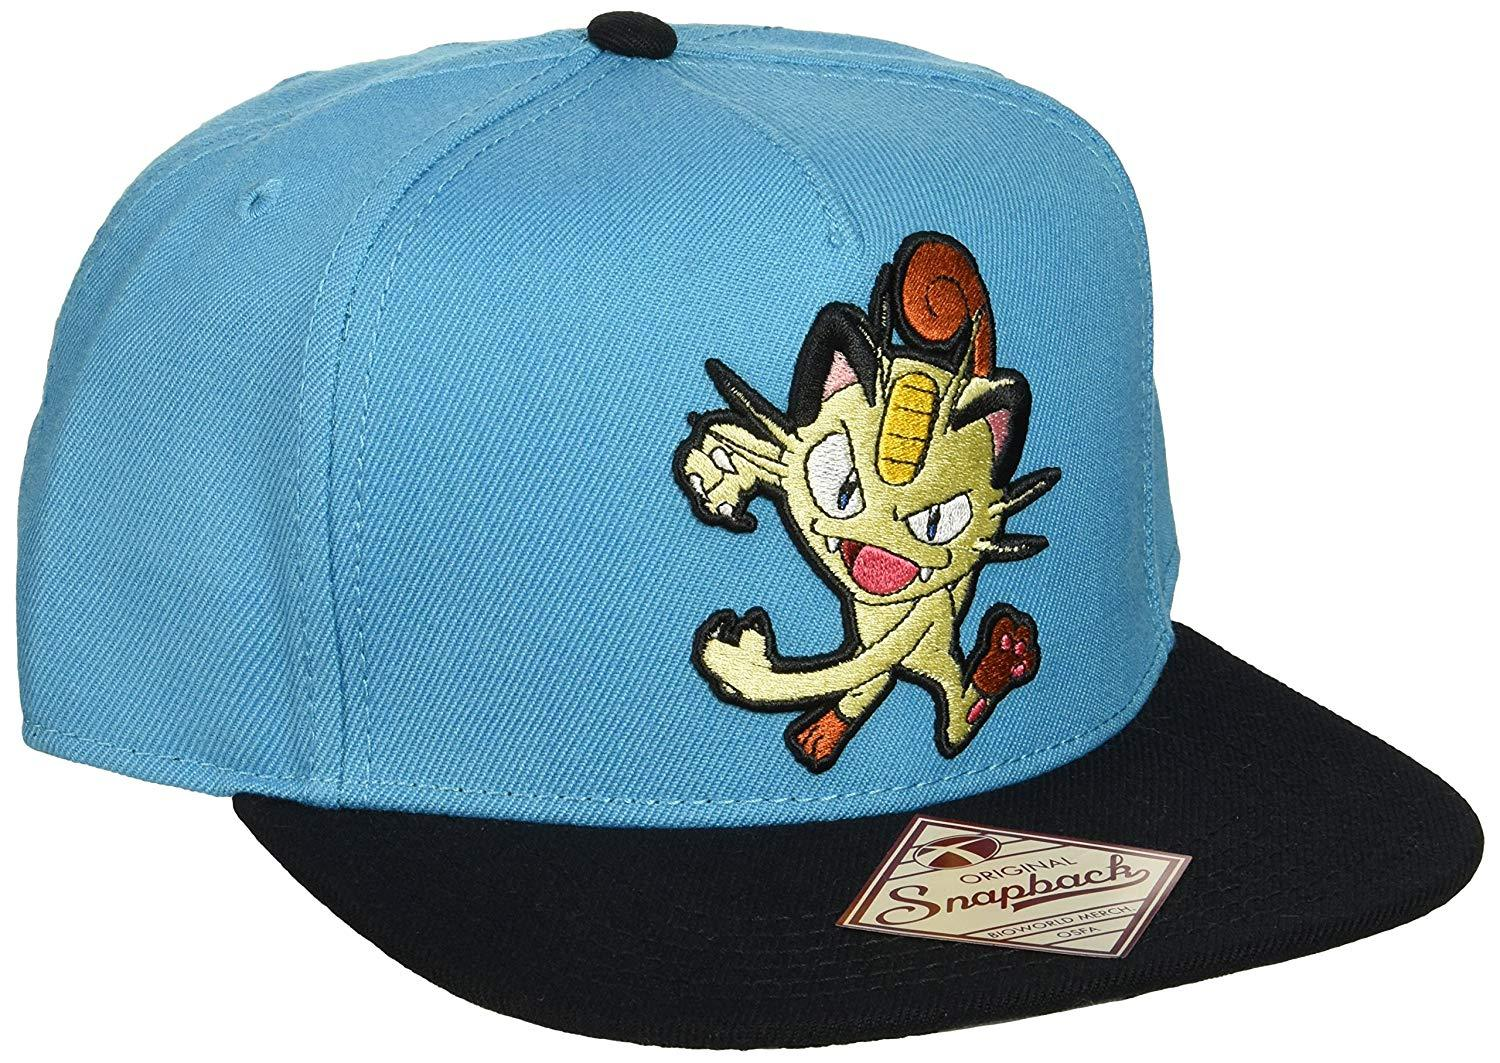 Pokemon - Meowth Embroidered Turquoise Snapback